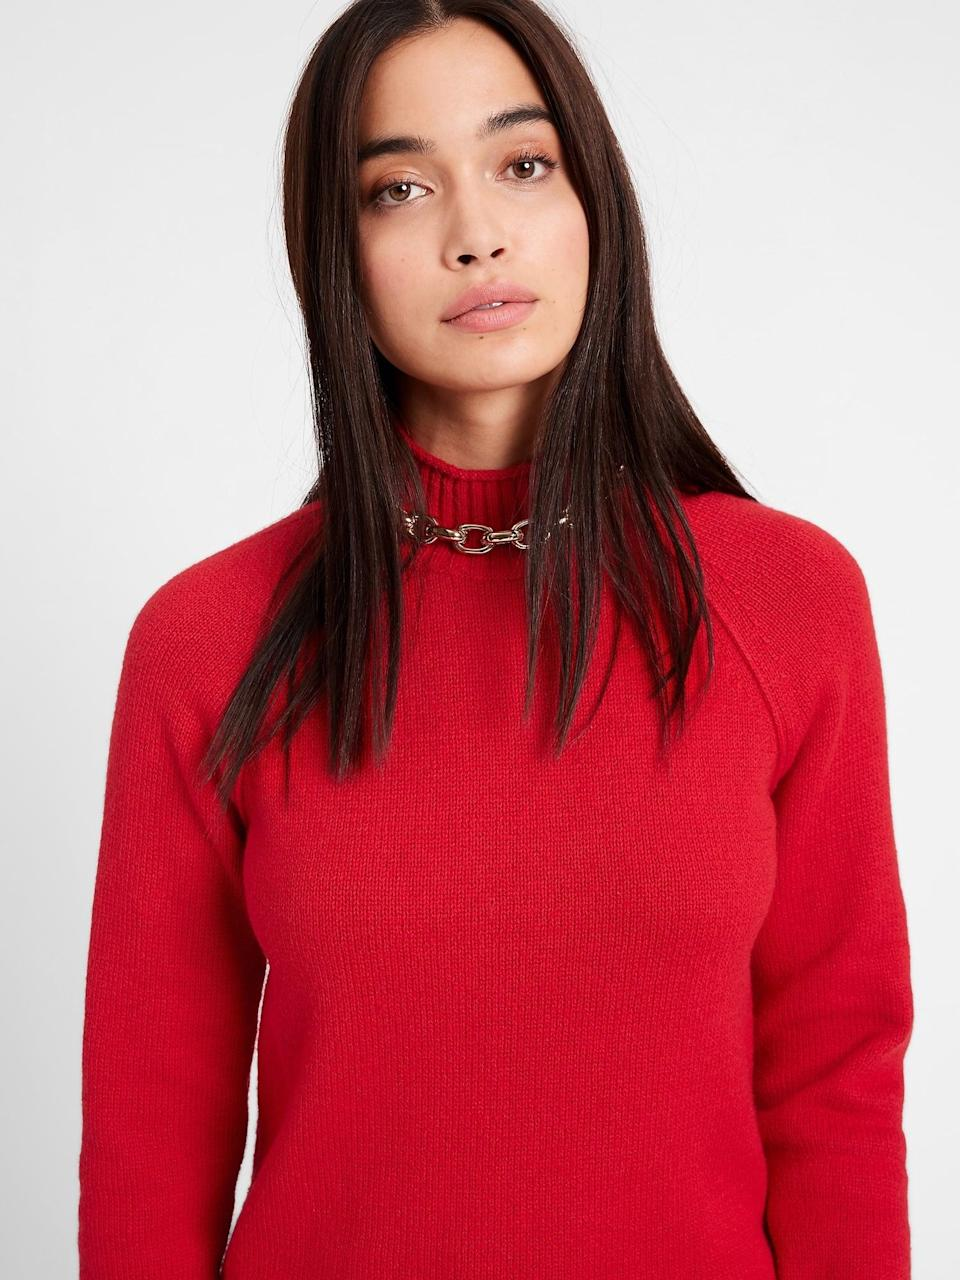 """<p>We love a <a href=""""https://www.popsugar.com/fashion/best-sweaters-from-gap-and-banana-republic-48032294"""" class=""""link rapid-noclick-resp"""" rel=""""nofollow noopener"""" target=""""_blank"""" data-ylk=""""slk:chunky red knit"""">chunky red knit</a> here. A soft <span>Banana Republic Chunky Mock-Neck Sweater</span> ($23, originally $80) is a showstopper for a great deal and can be worn season after season.</p>"""